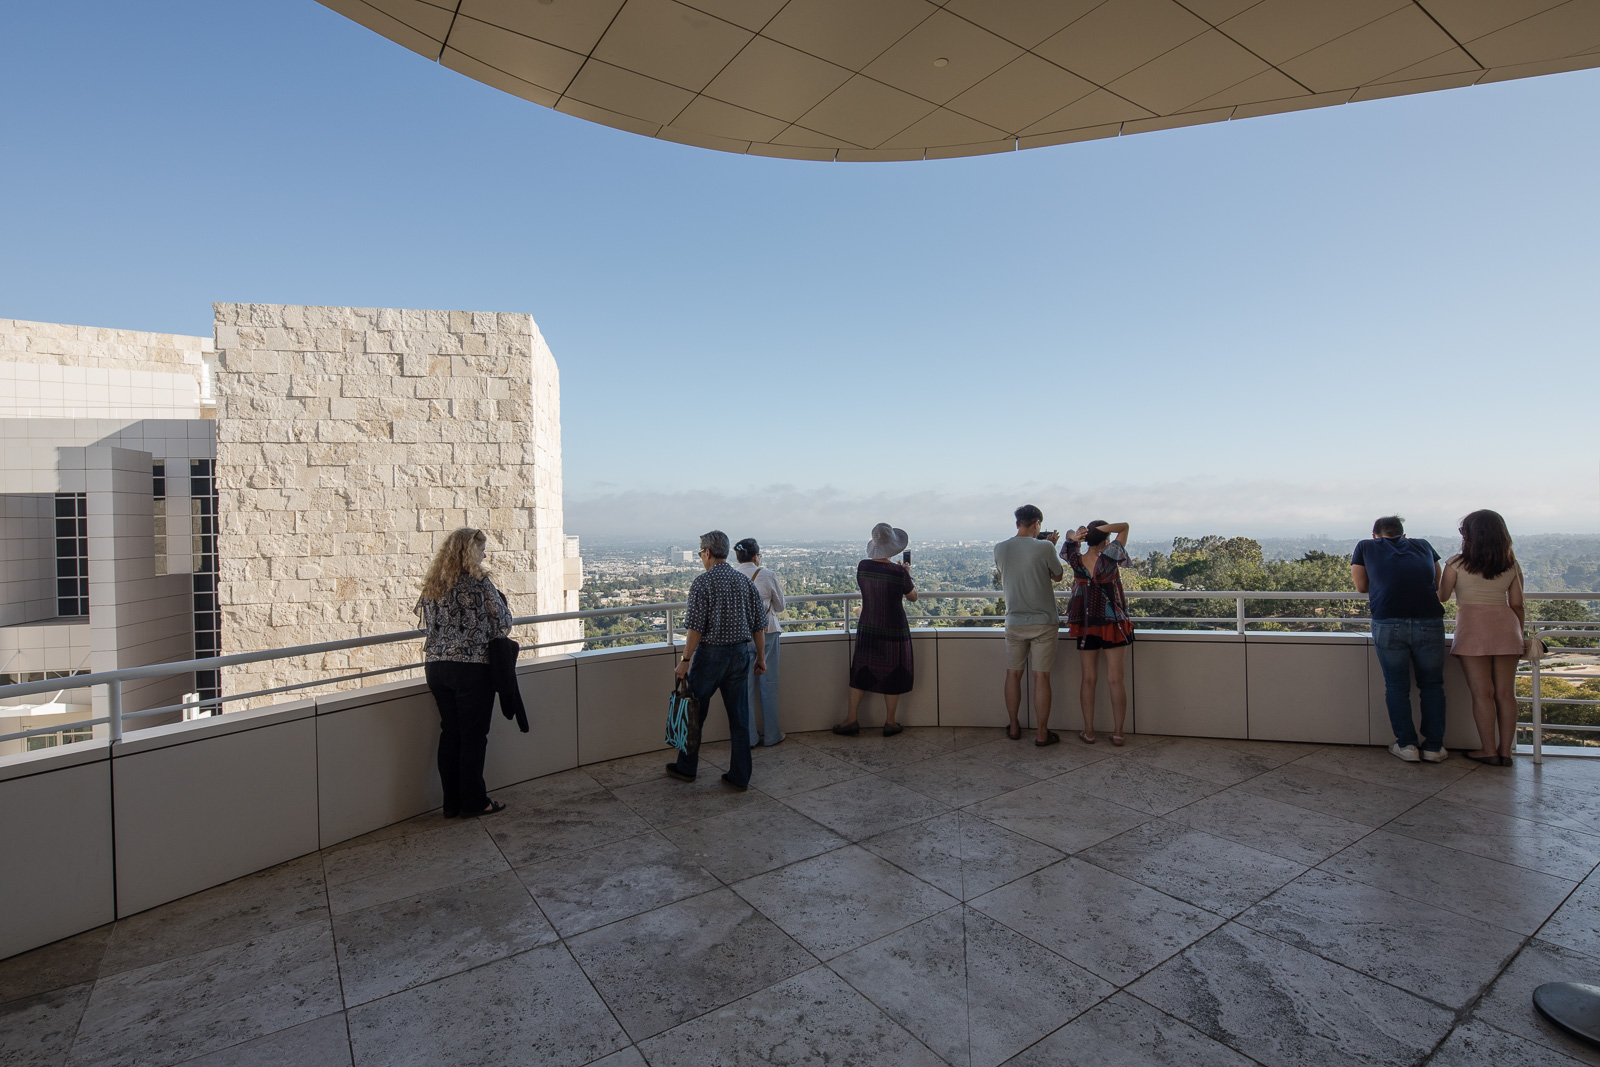 People visiting the Getty Museum